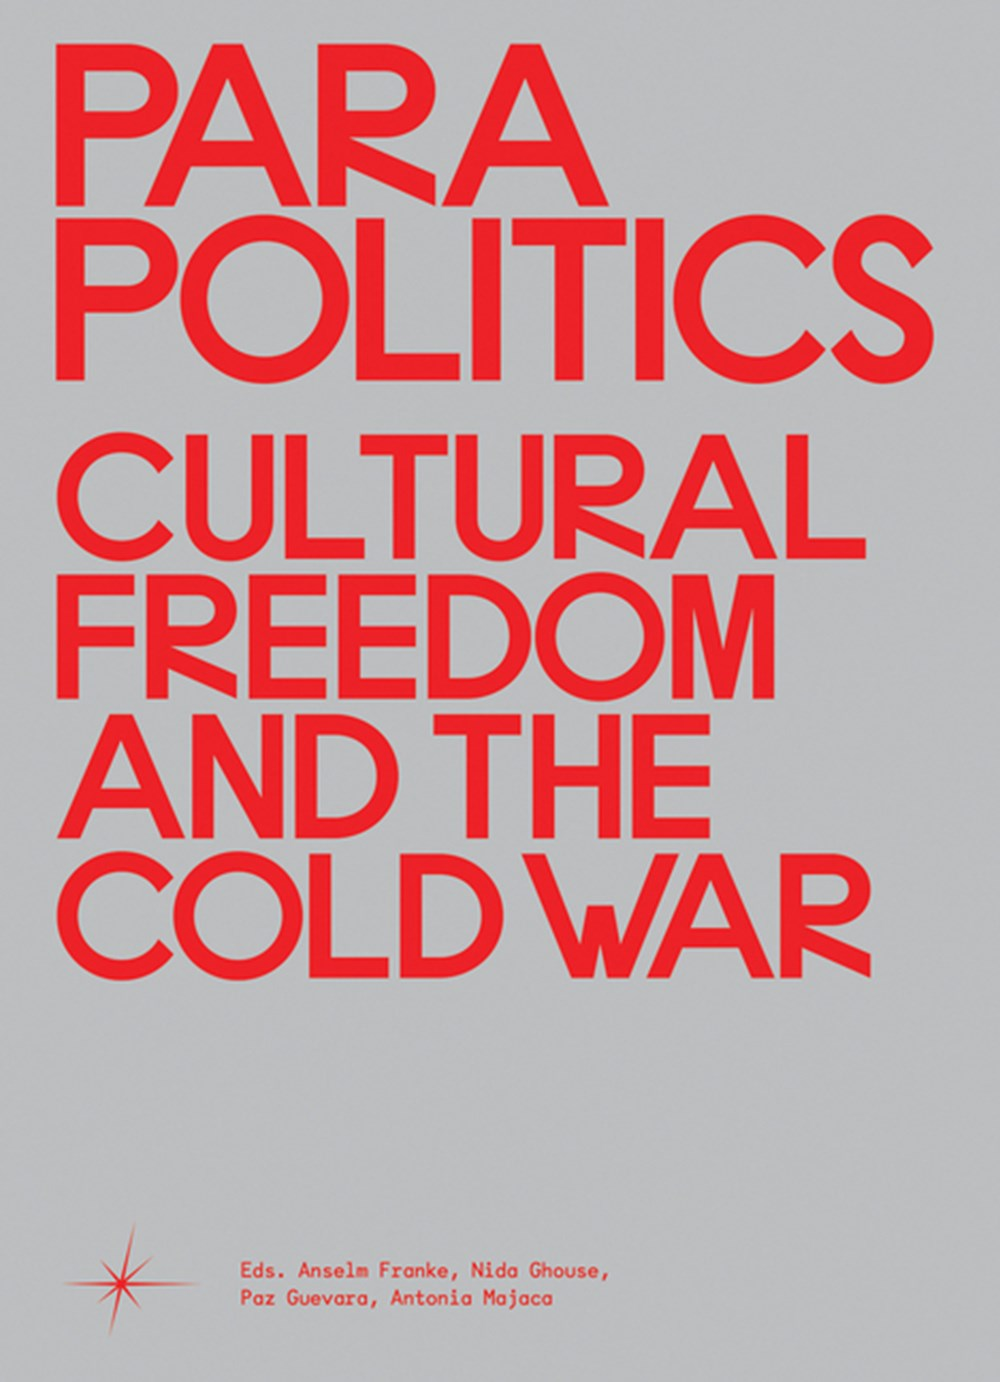 Parapolitics Cultural Freedom and the Cold War